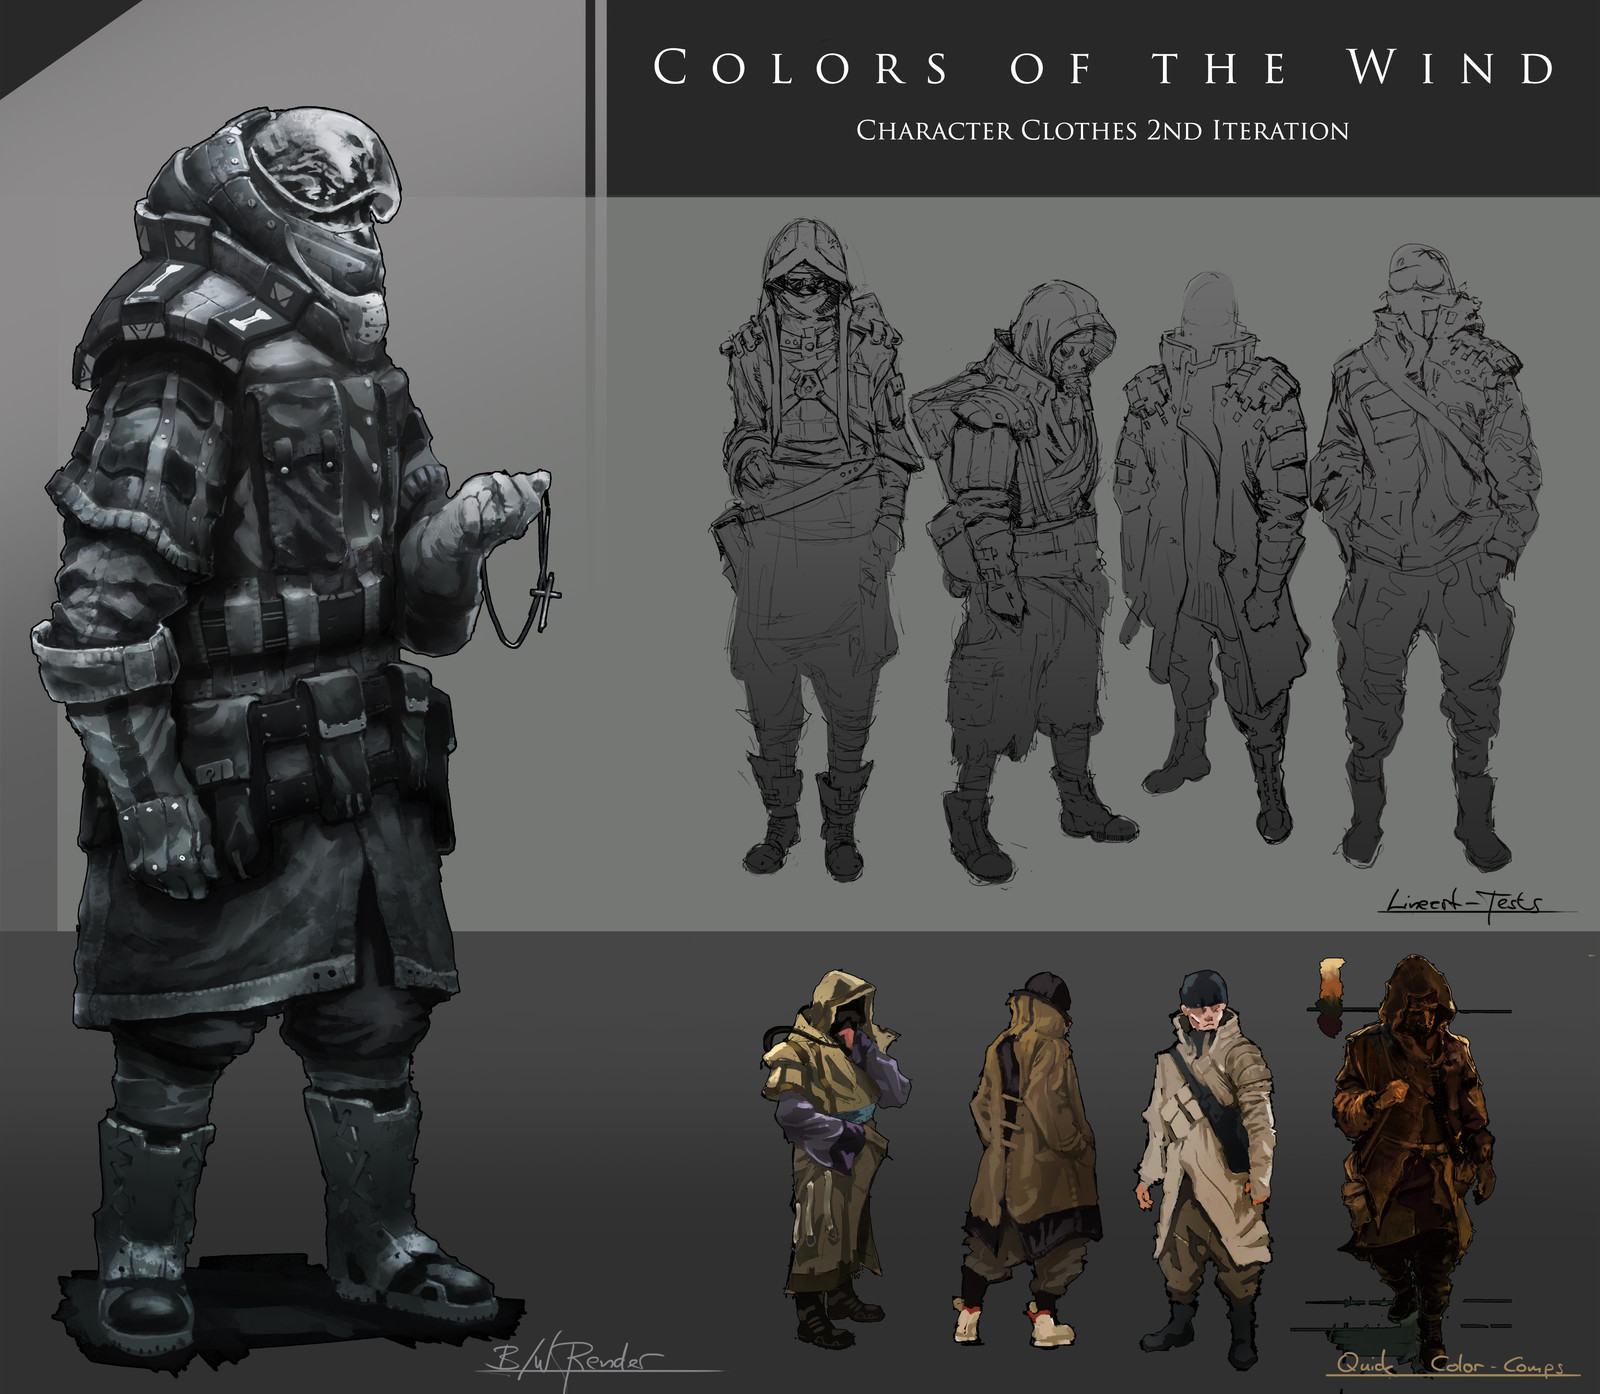 Colors of the Wind: 2nd Clothing Iteration